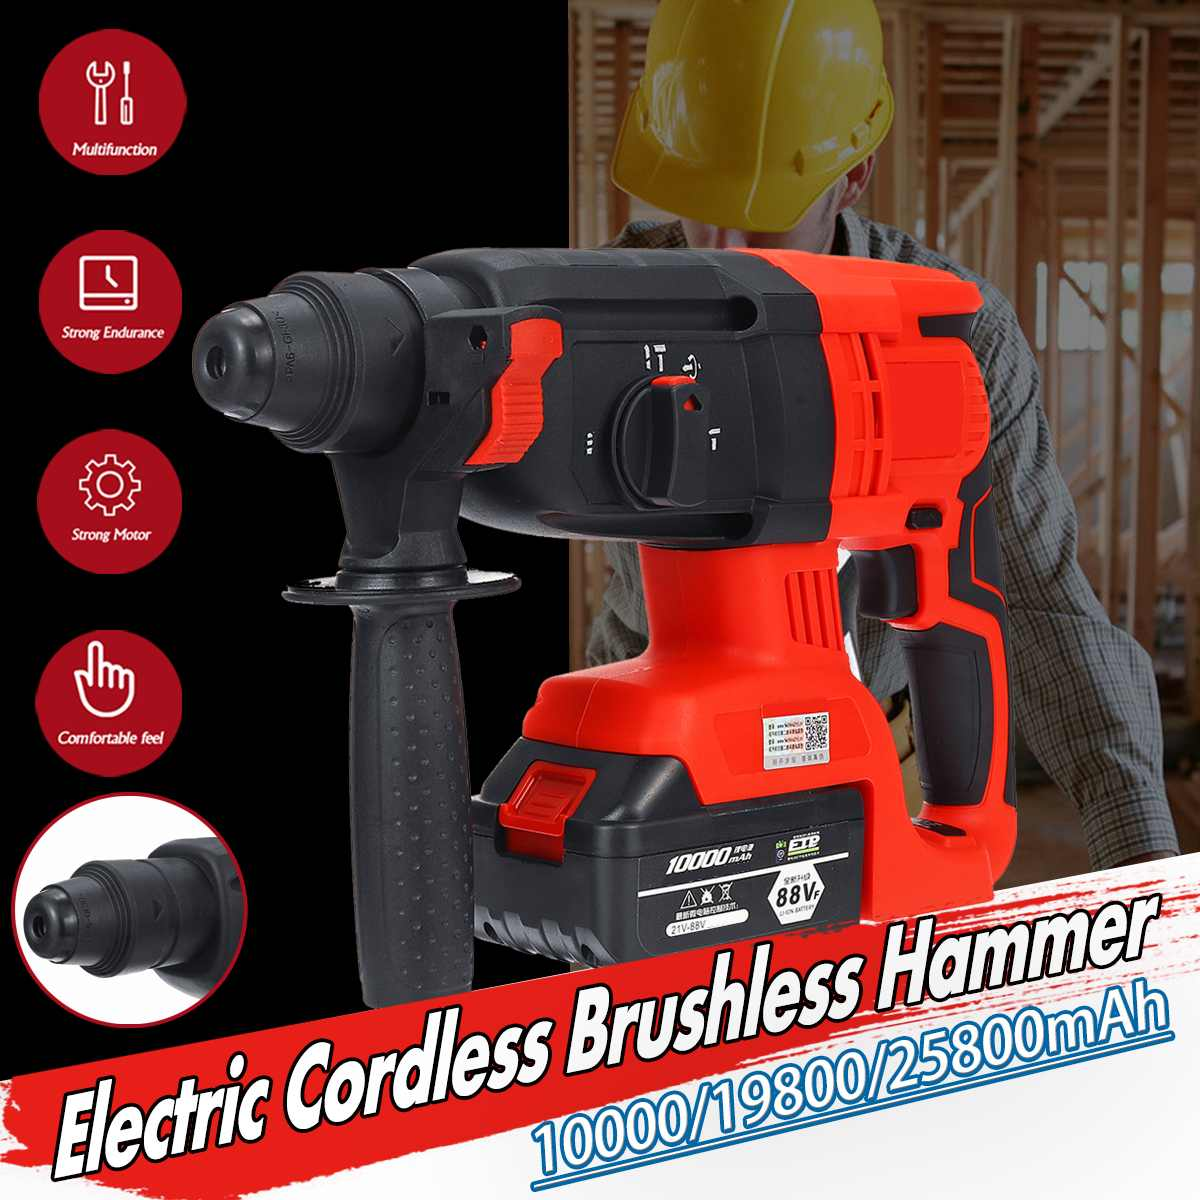 3 IN 1 88V/128V/228V Electric Brushless Hammer Cordless Power Impact Drill With Lithium Battery Power Drill Electric Drill